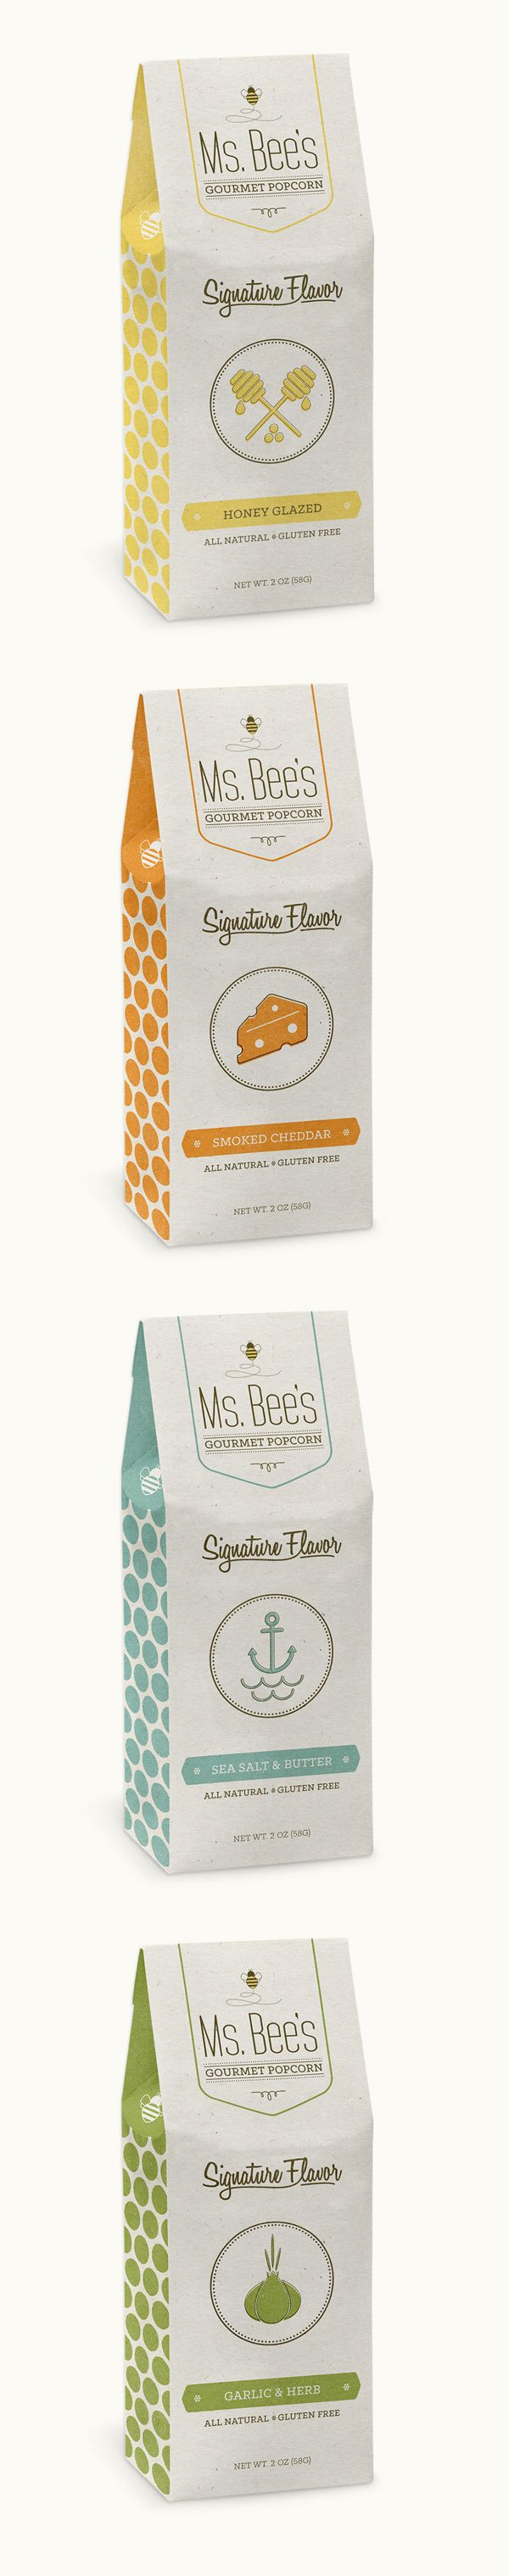 Ms. Bee's Gourmet Popcorn by Alex Chernault, via Behance